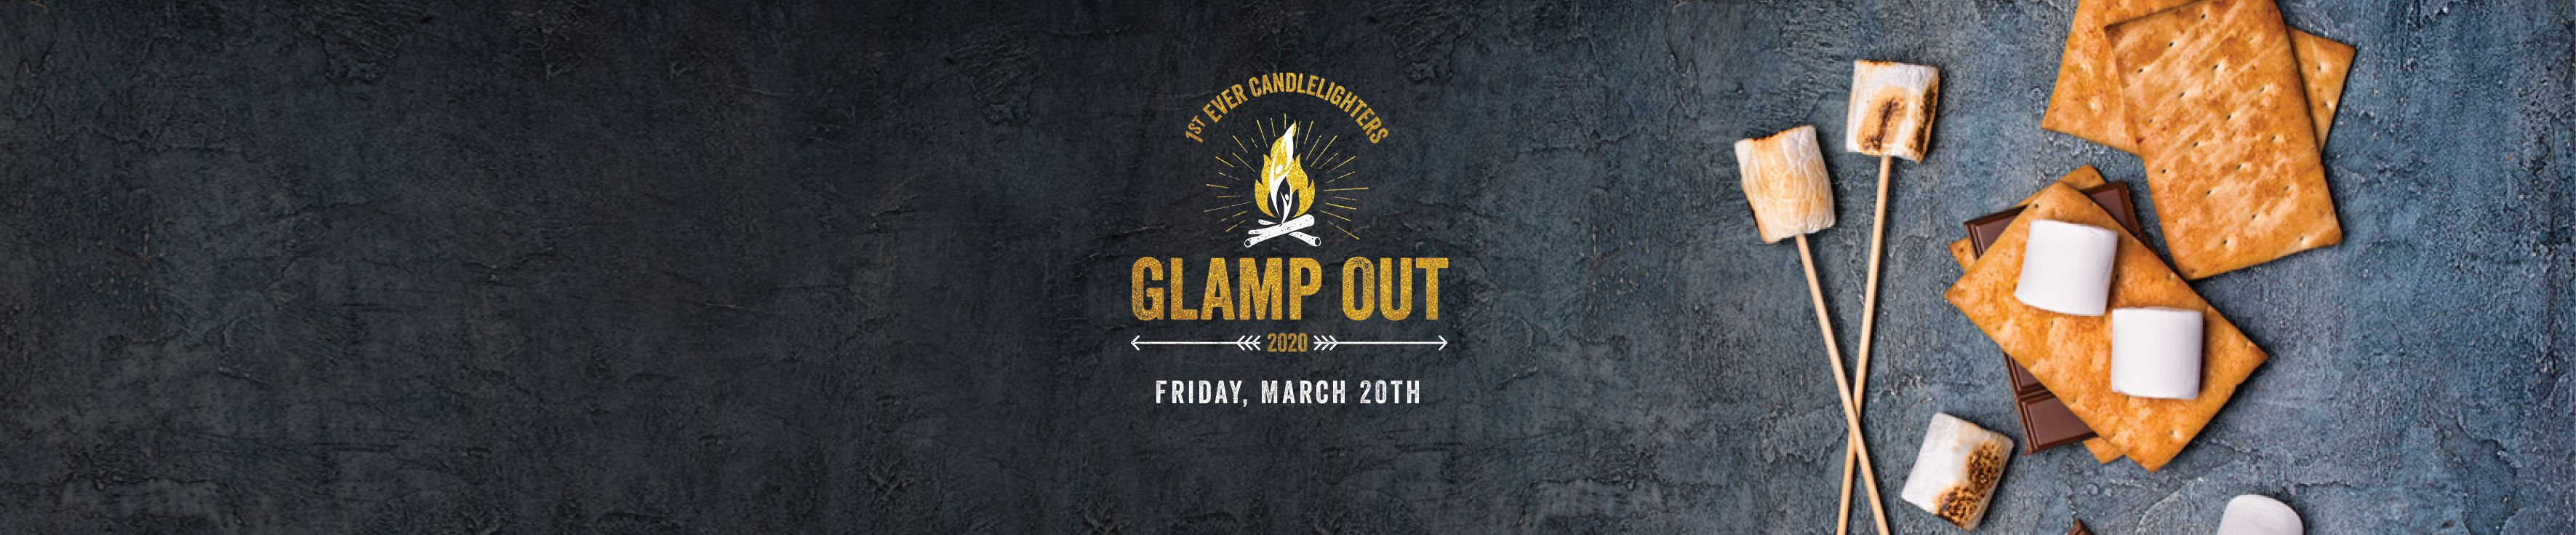 Join us for Glamp Out!